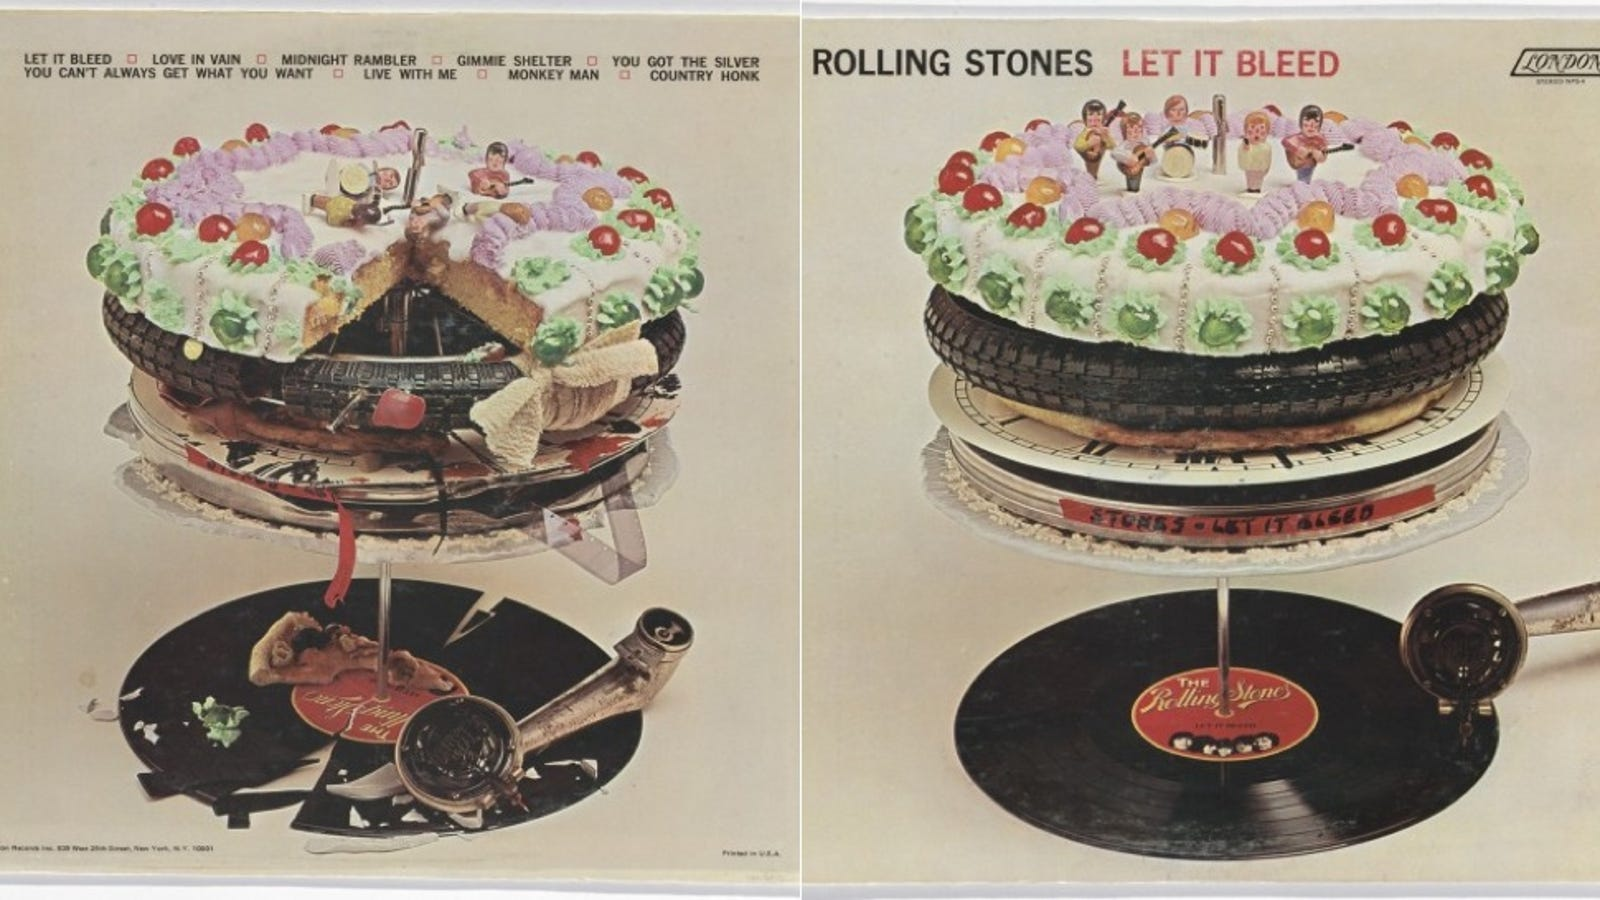 How the Rolling Stones' Iconic Let It Bleed Album Art Was Made